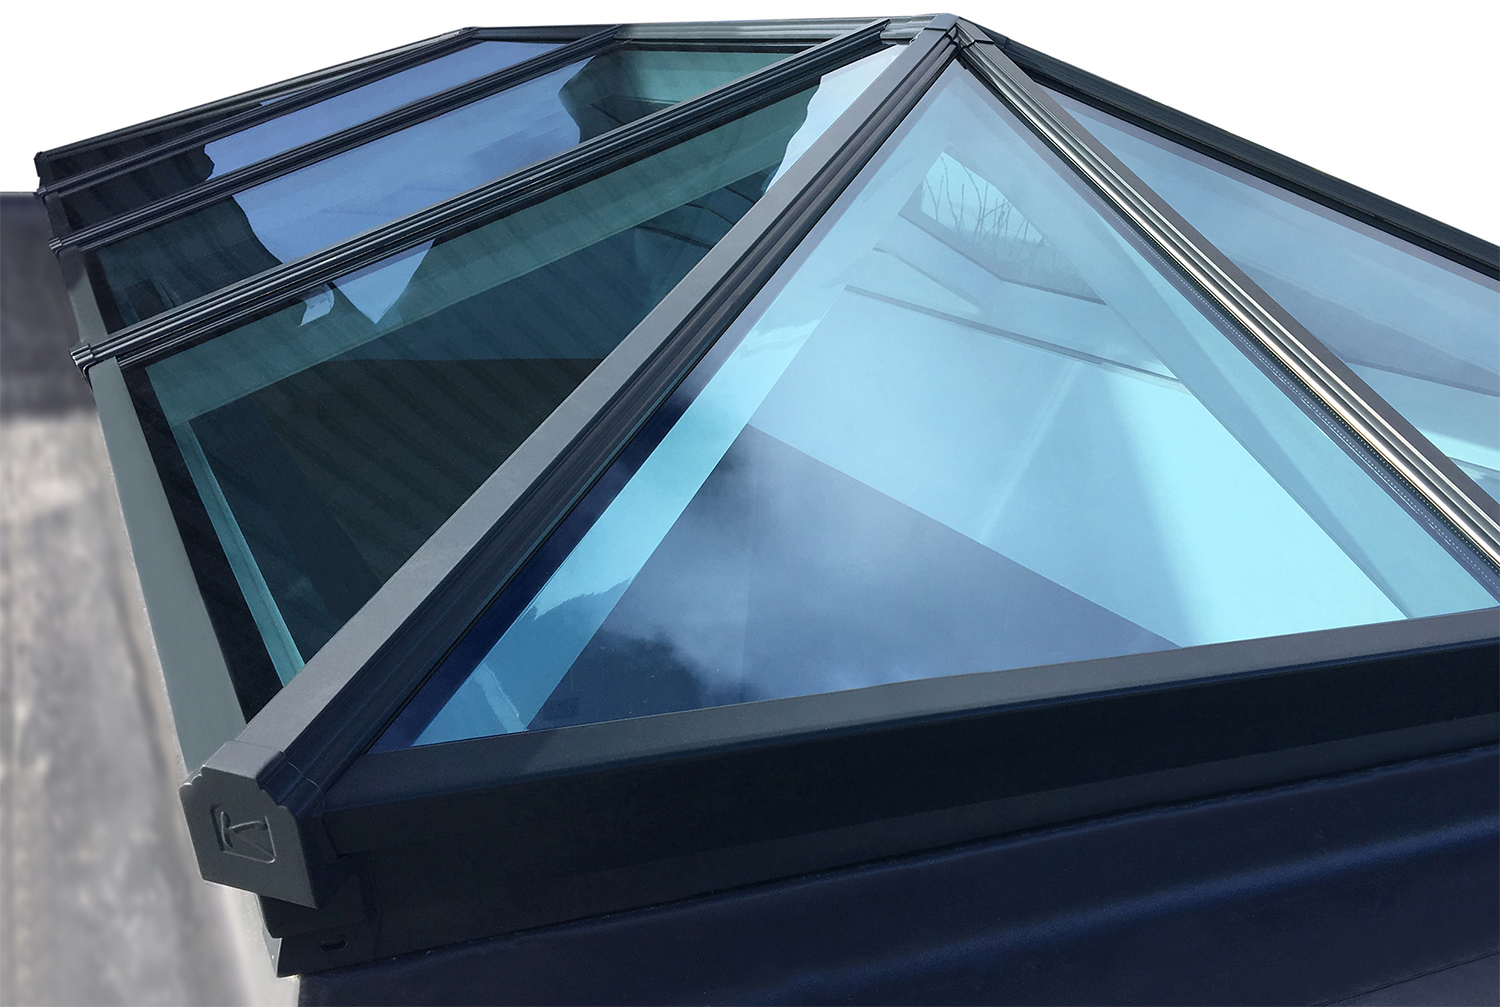 Korniche Roof Lanterns - Best Prices & Fastest Delivery